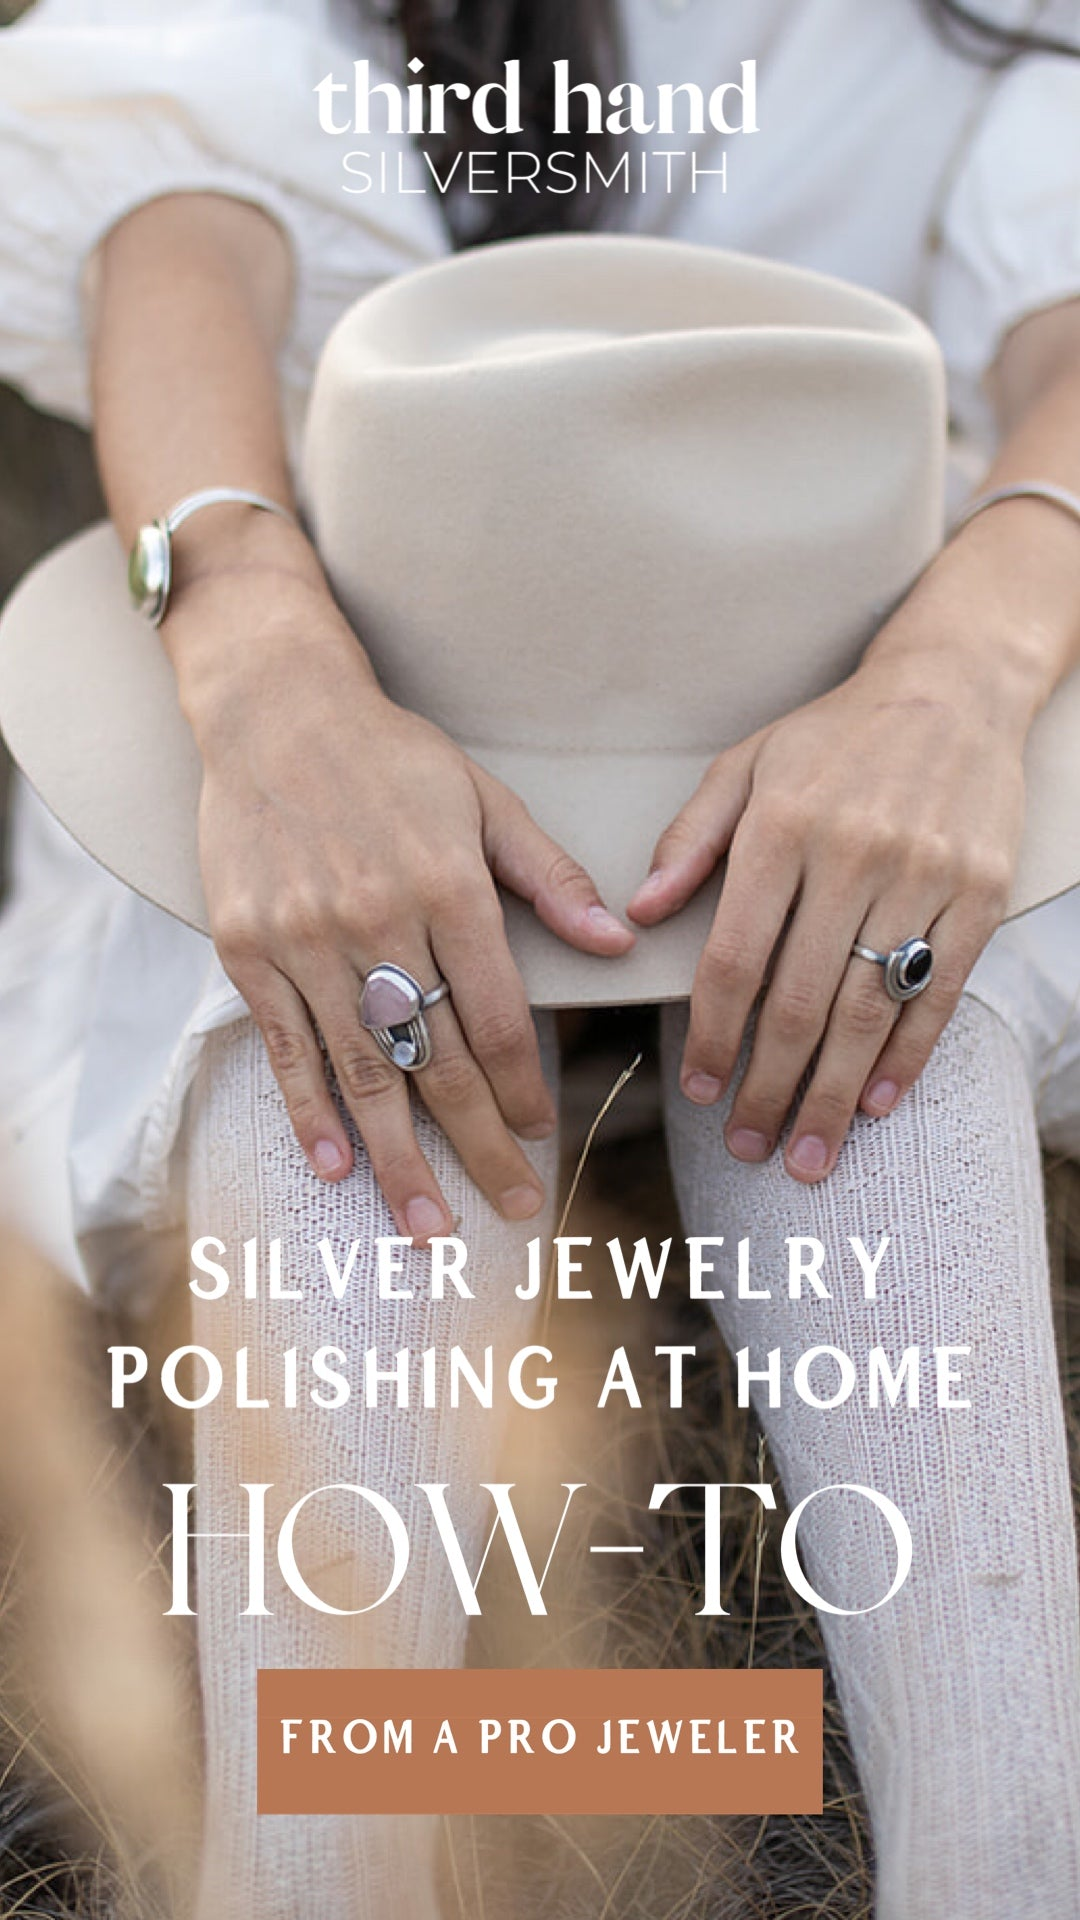 silver jewelry polishing at home how to, simple jewelry polishing tips